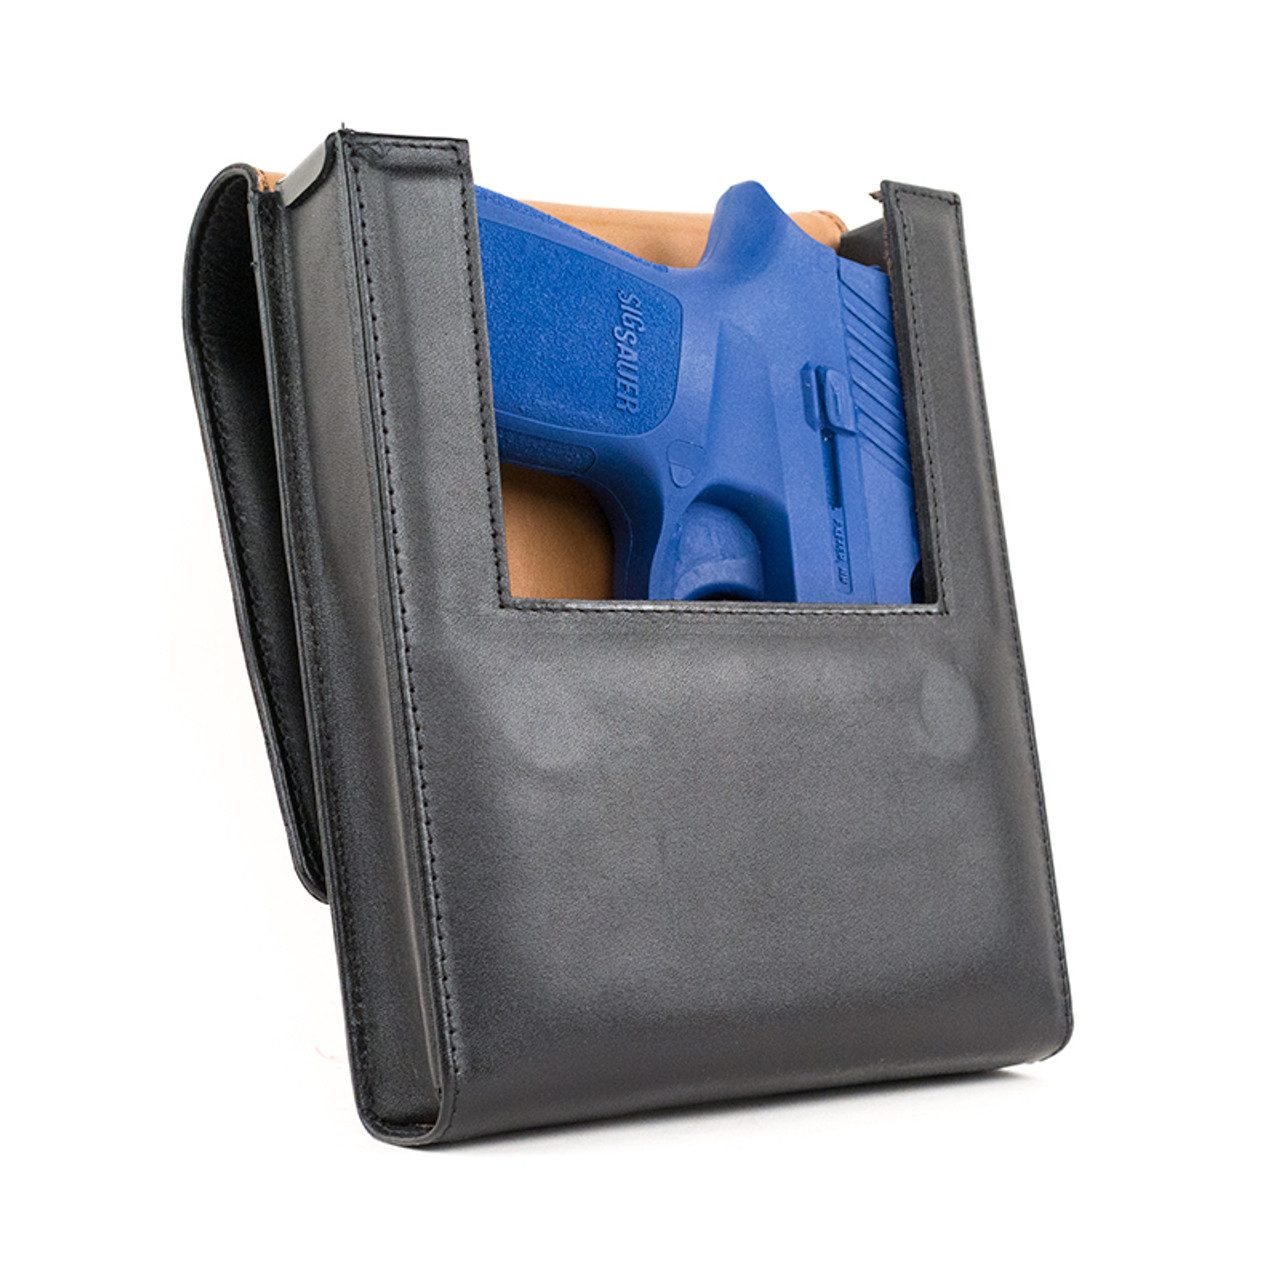 Sig Sauer P250 Compact Concealed Carry Belt Loop Holster